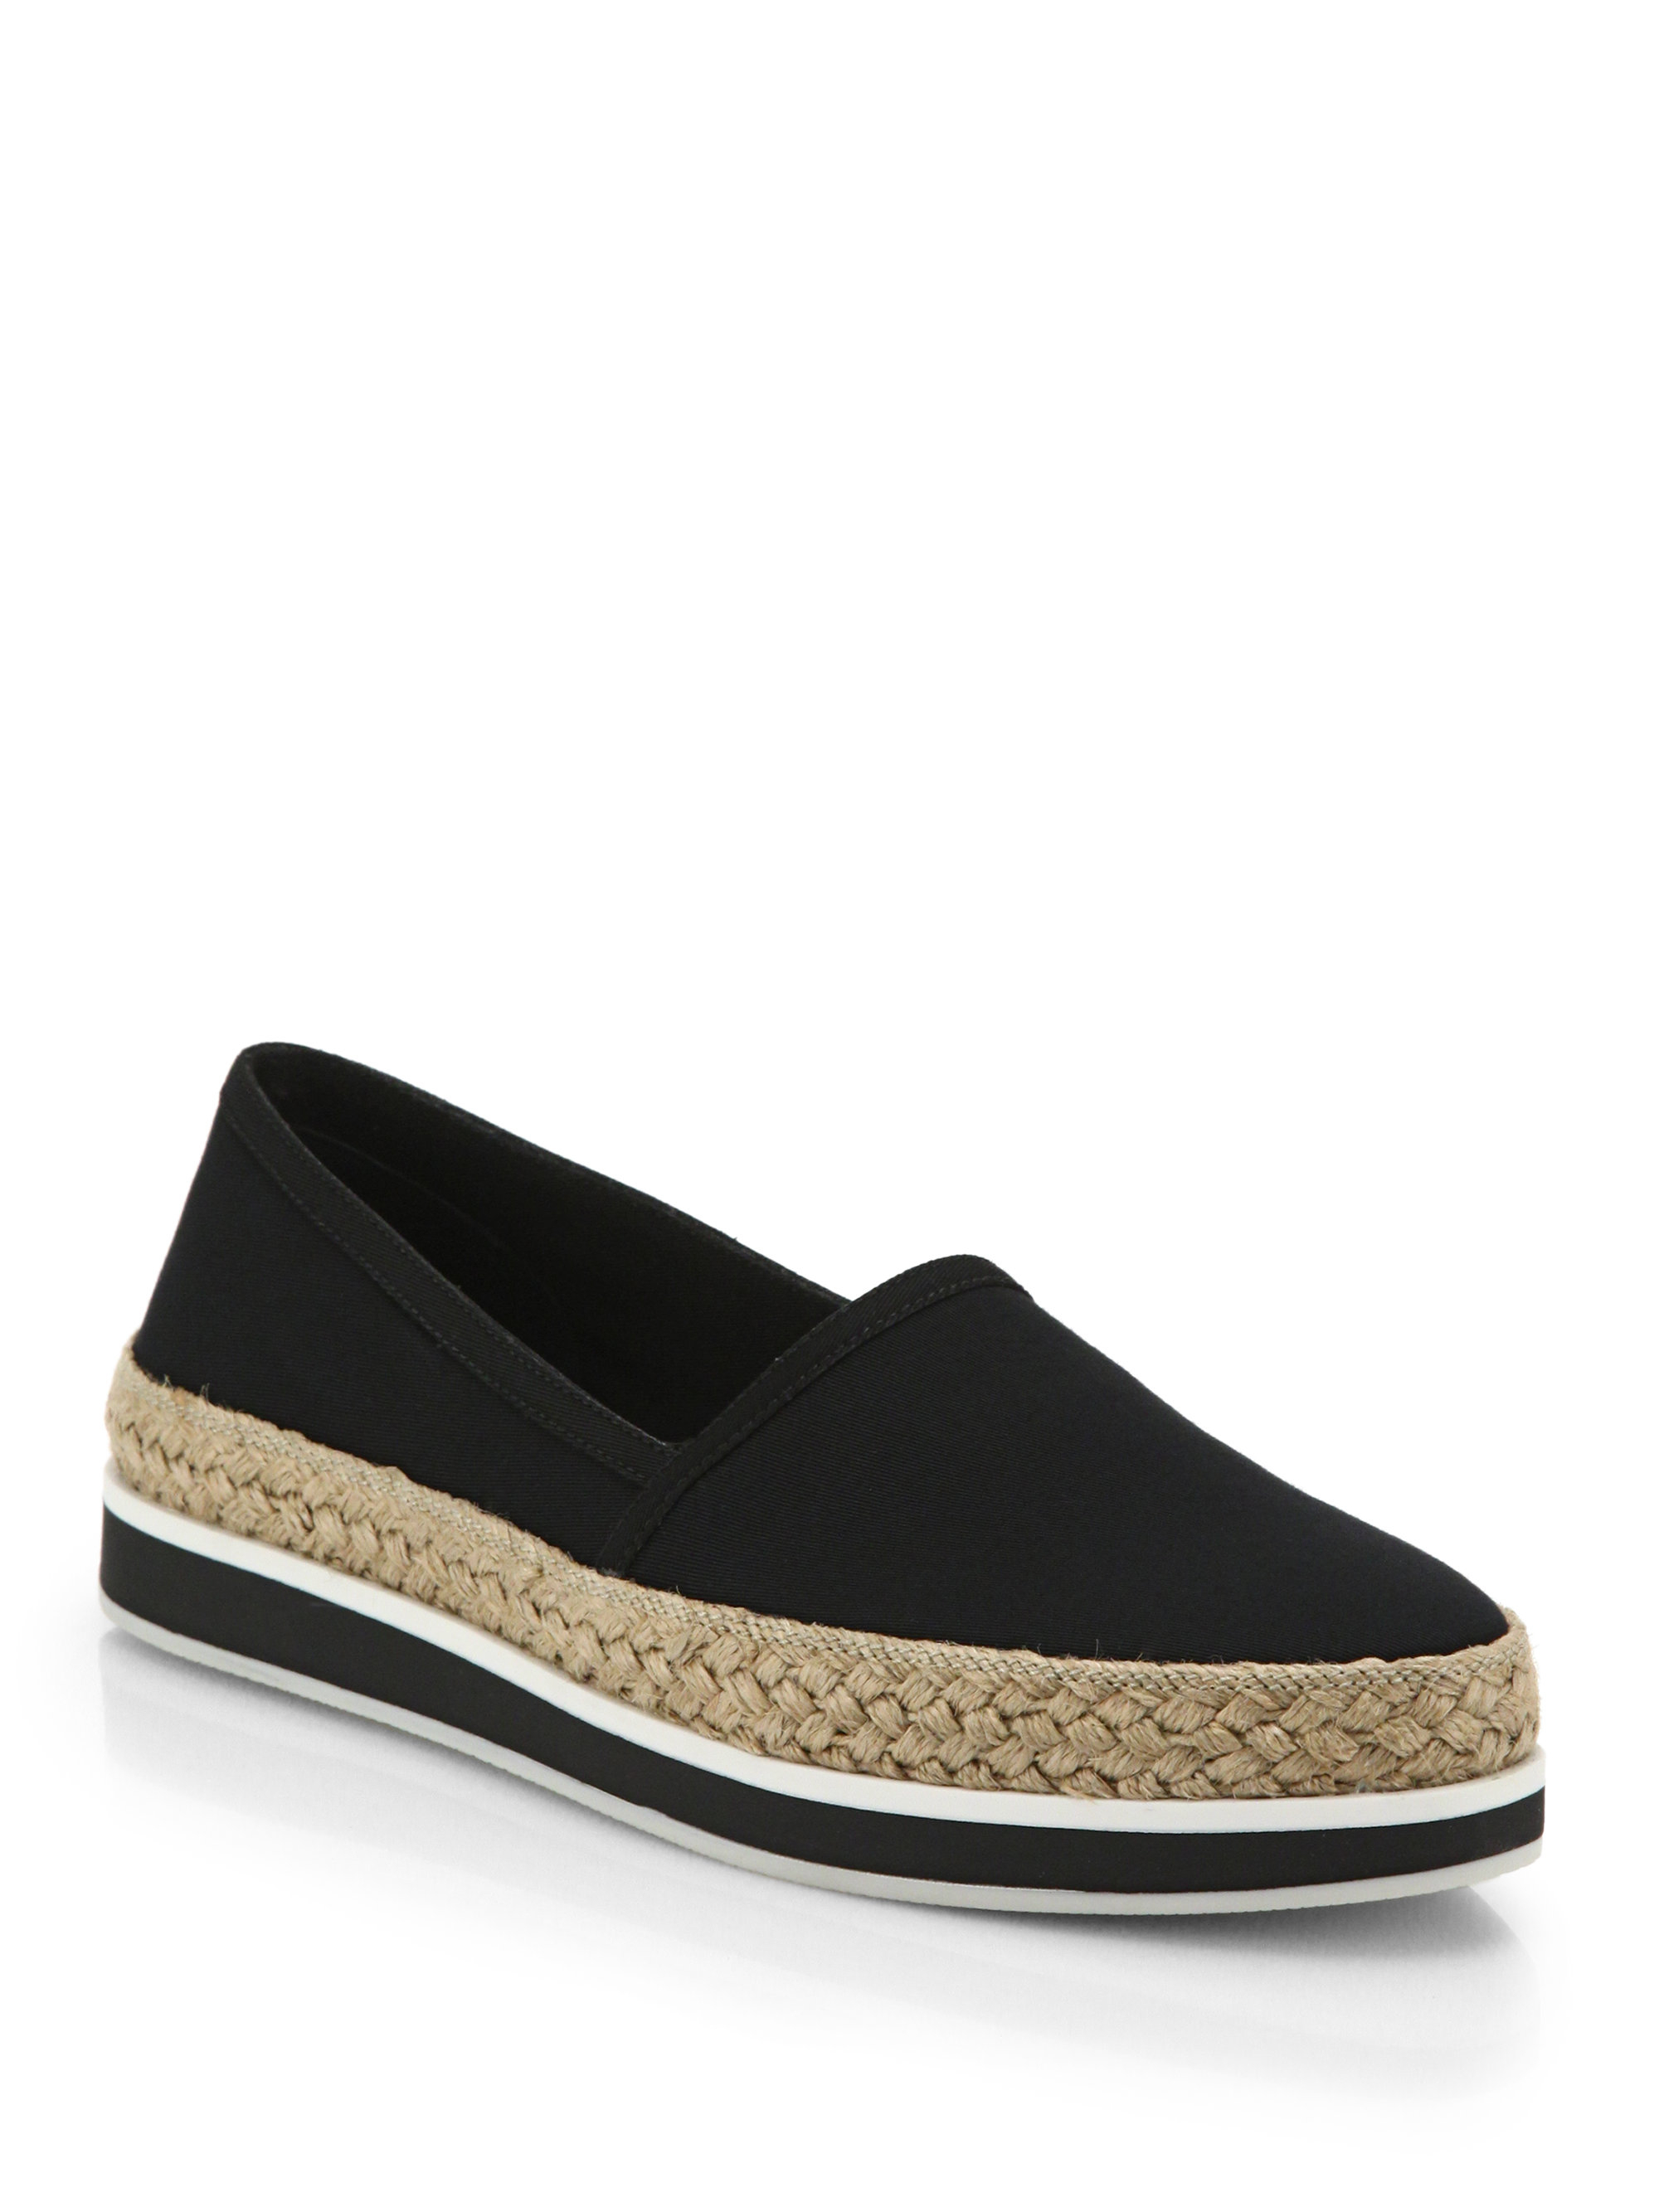 best store to get sale online Prada Suede Espadrille Flats visit new cheap price e18FgMNYB